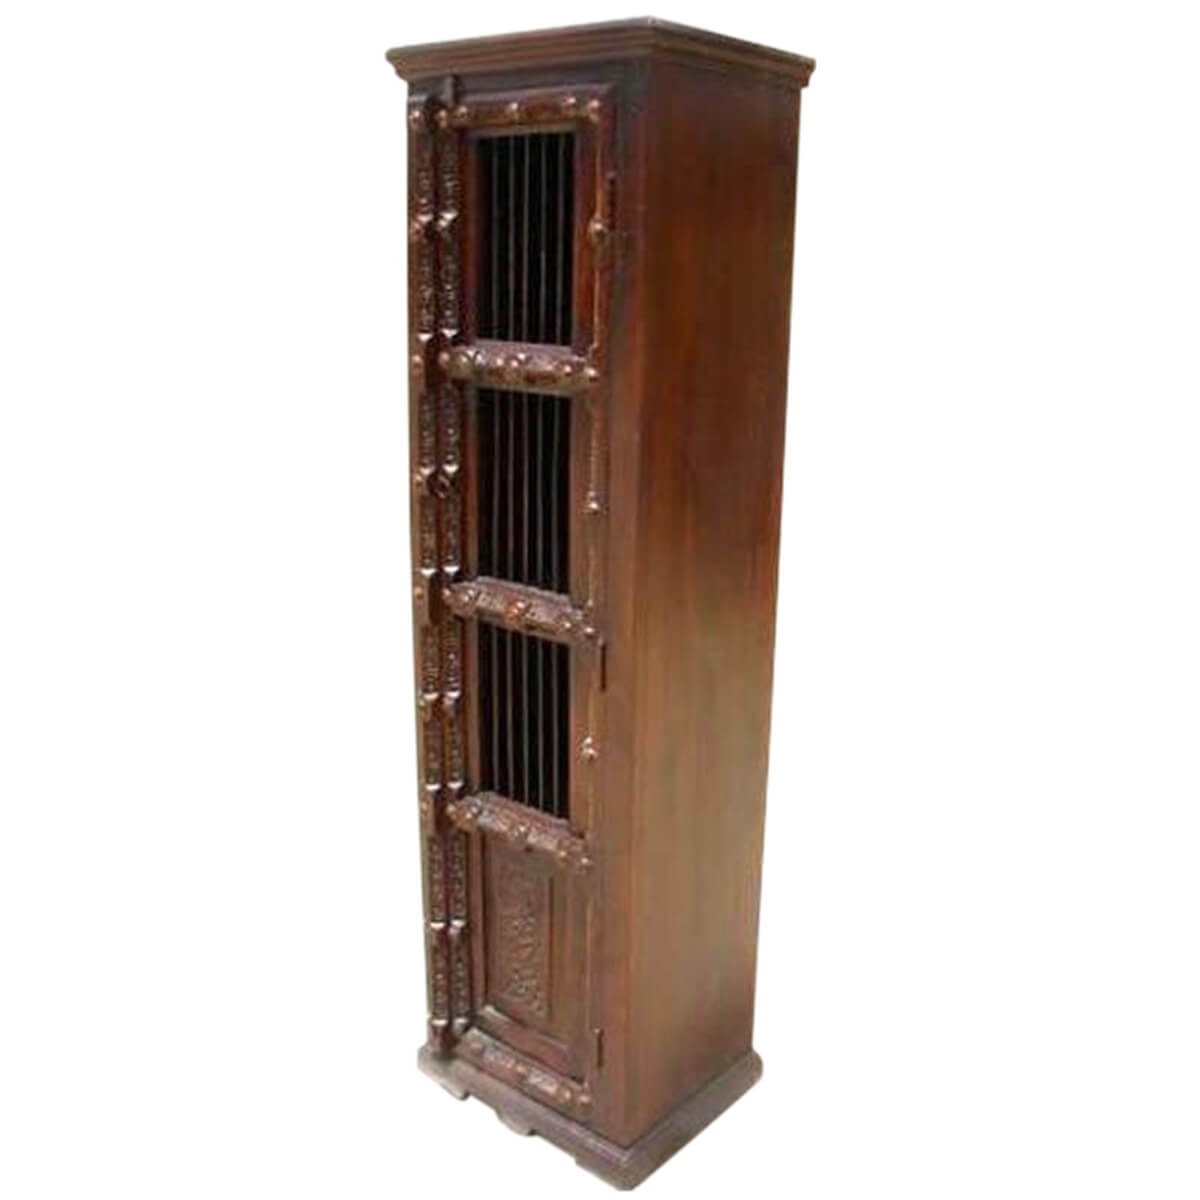 Wood Storage Cabinet With Shelves ~ Wood unit kitchen corner stand storage cabinet shelf